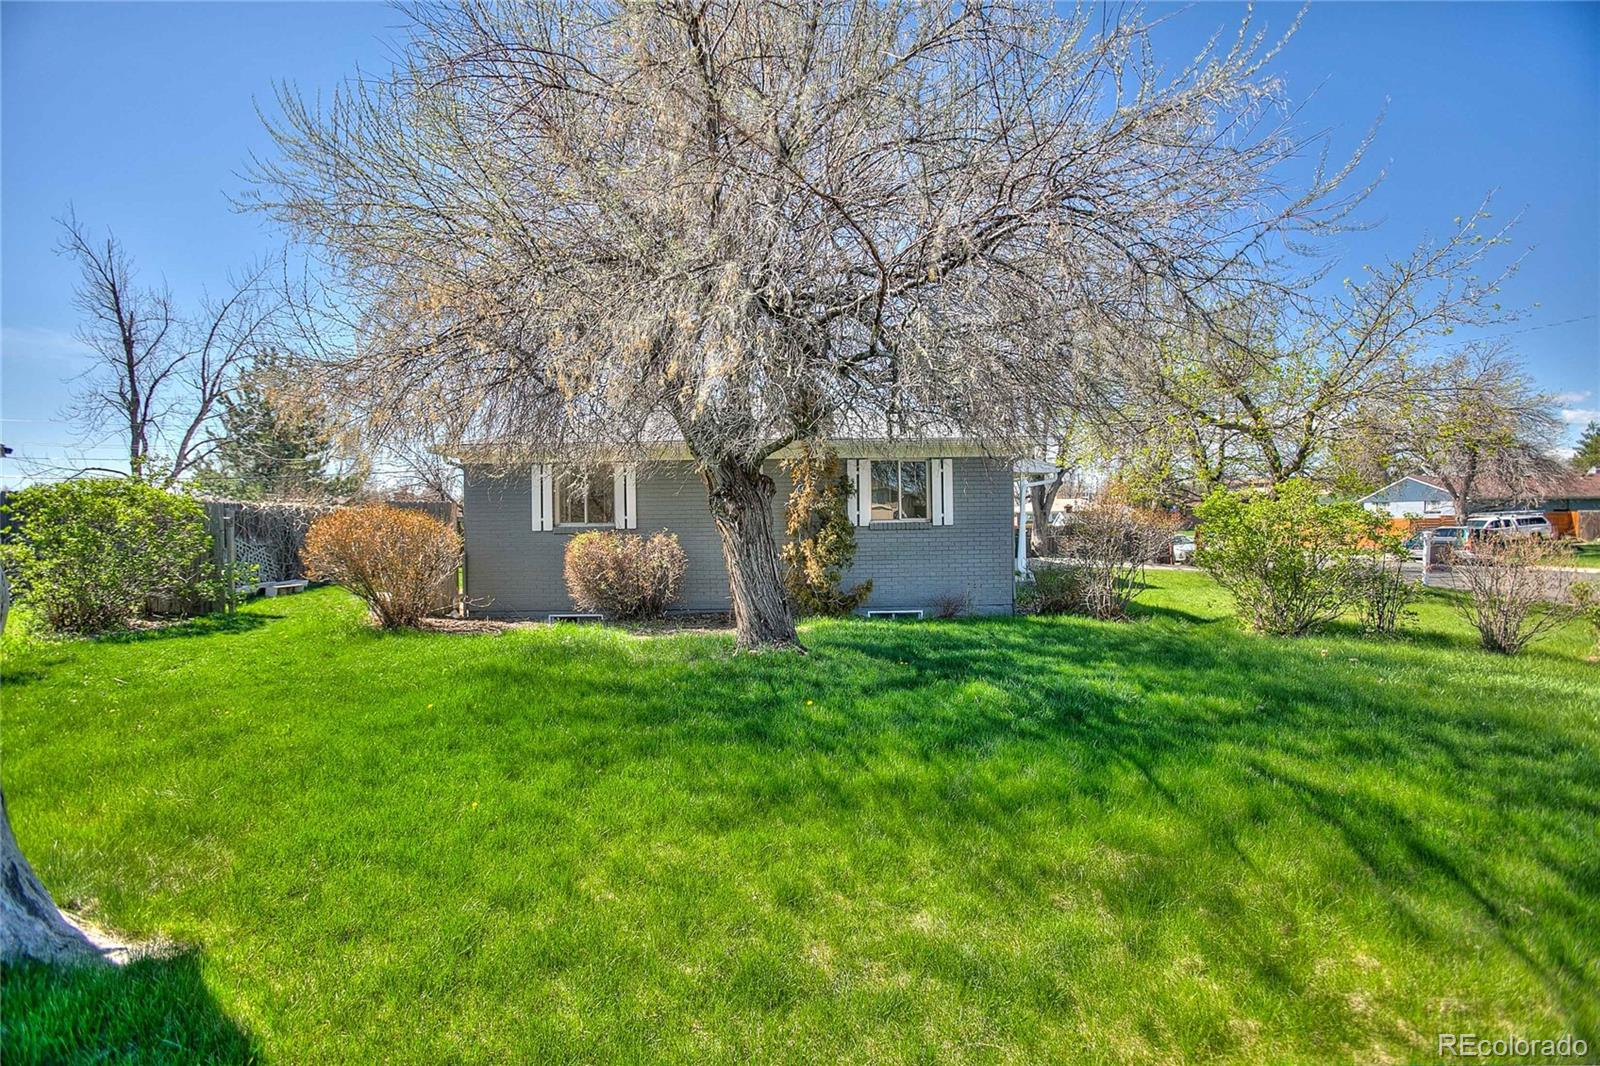 MLS# 9710462 - 36 - 1250 W 7th Ave Dr, Broomfield, CO 80020